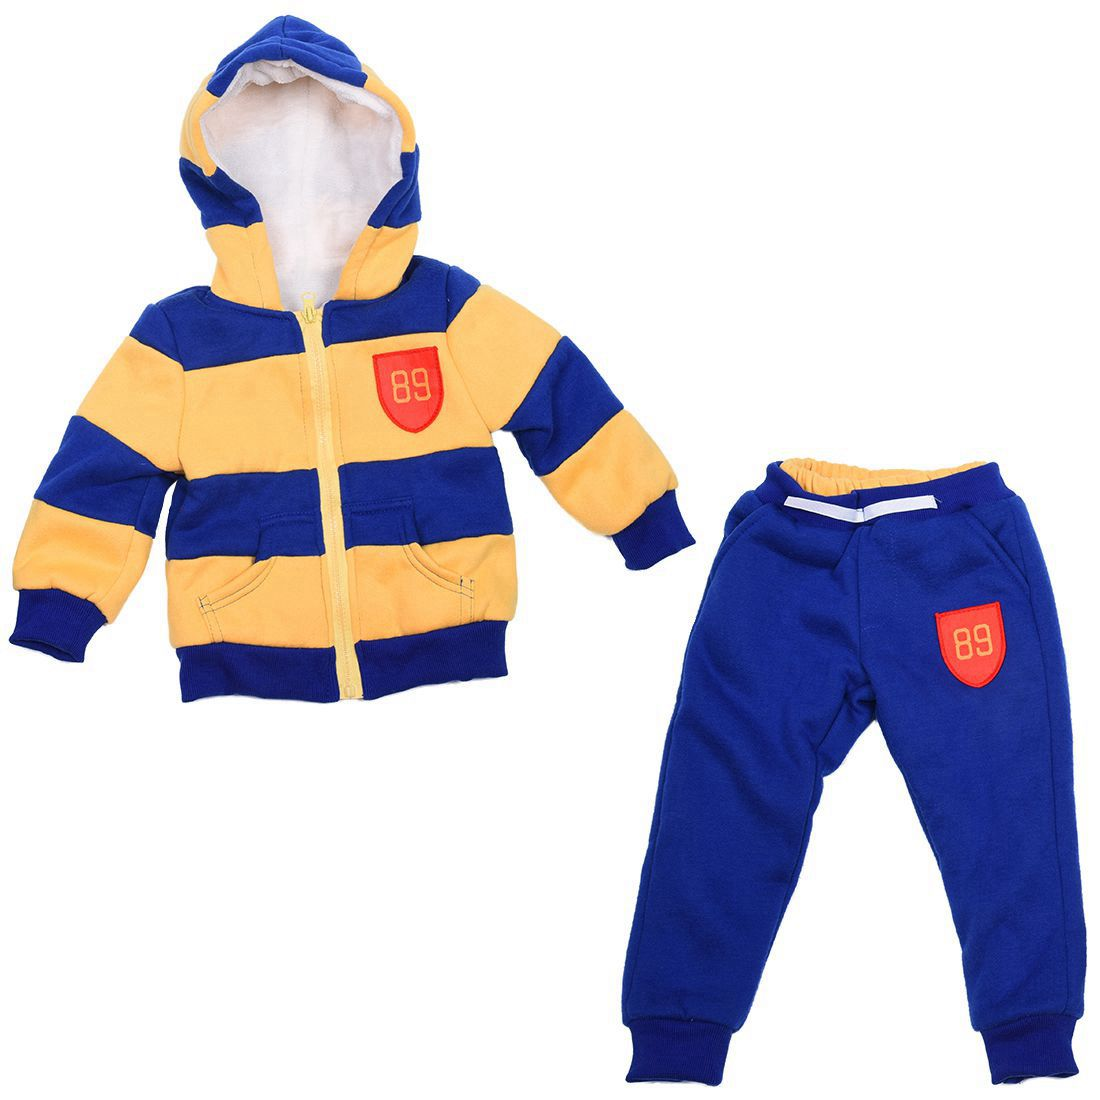 Baby Sports Suit Jacket Sweater Coat & Pants Thicken Kids Clothes Set Boys Girls Children Winter Wool 2016 new suit boys clothes brand winter sweater for kids 3 13 year with m word three piece set boys vest pants coat a 26145